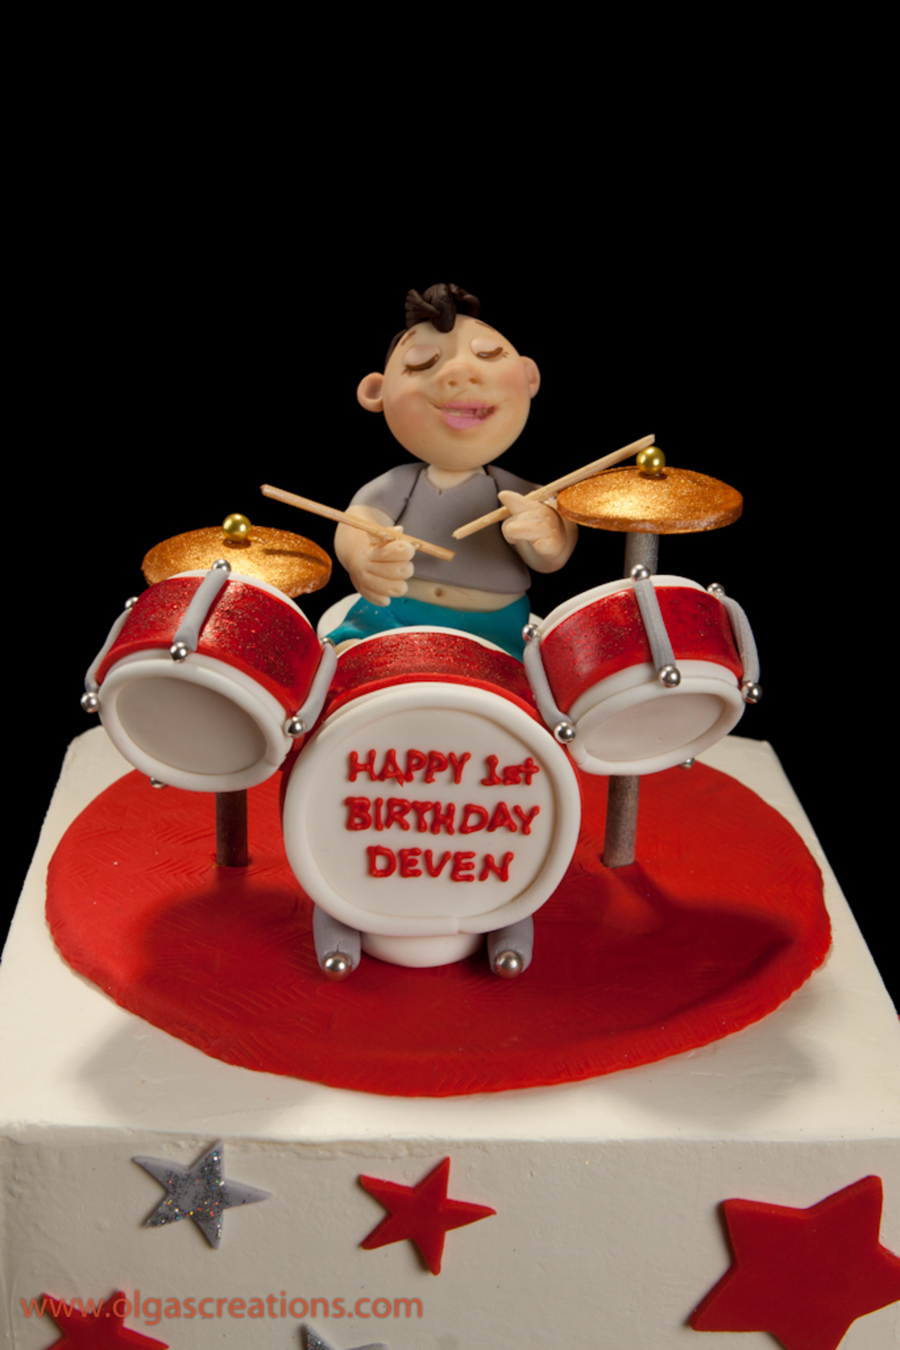 First Birthday Cake, Just A Drummer - CakeCentral.com